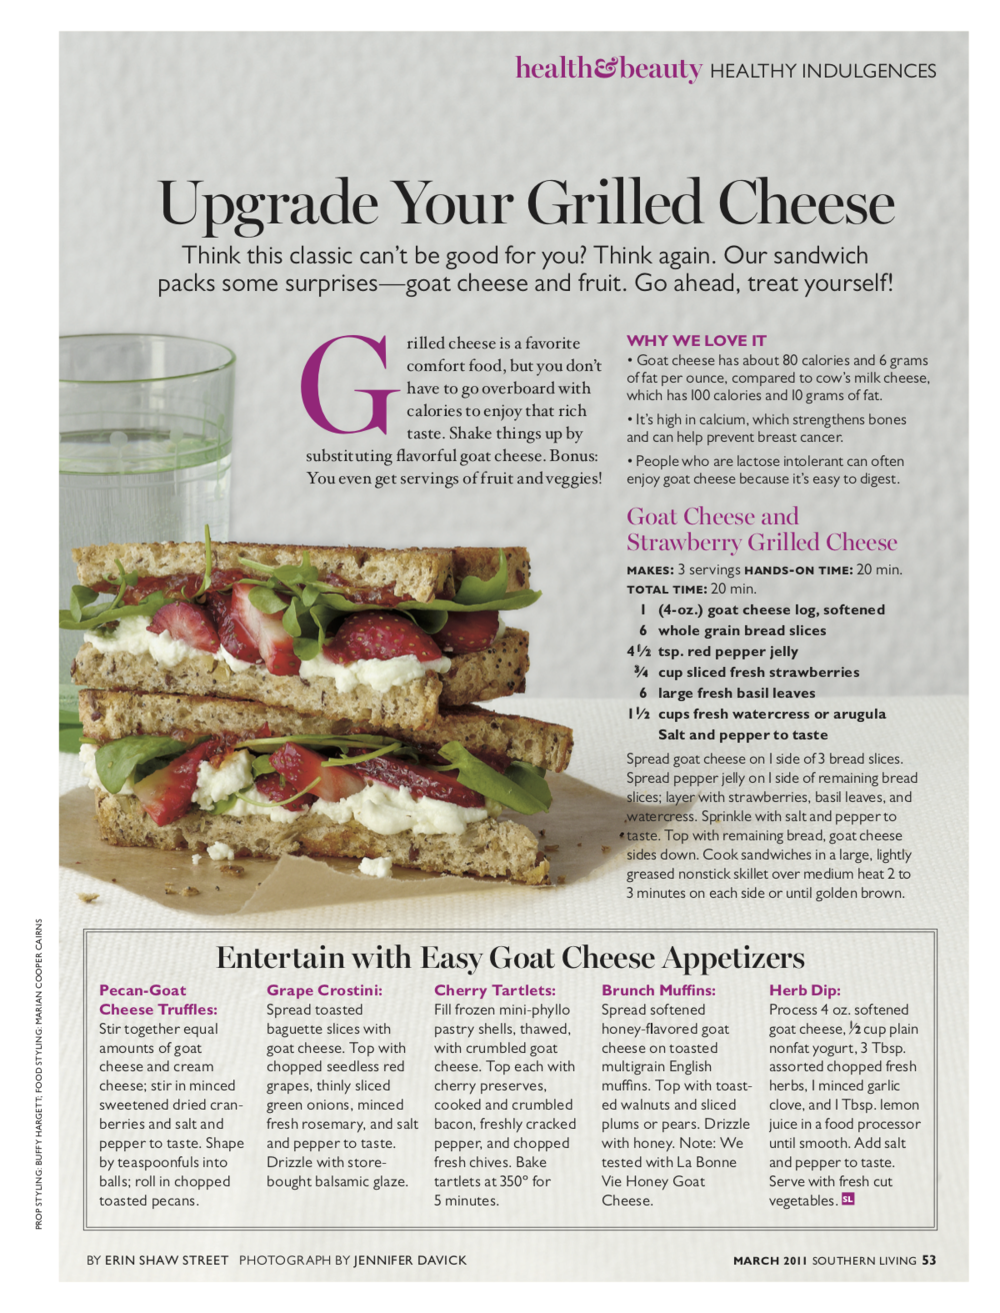 Upgrade Your Grilled Cheese